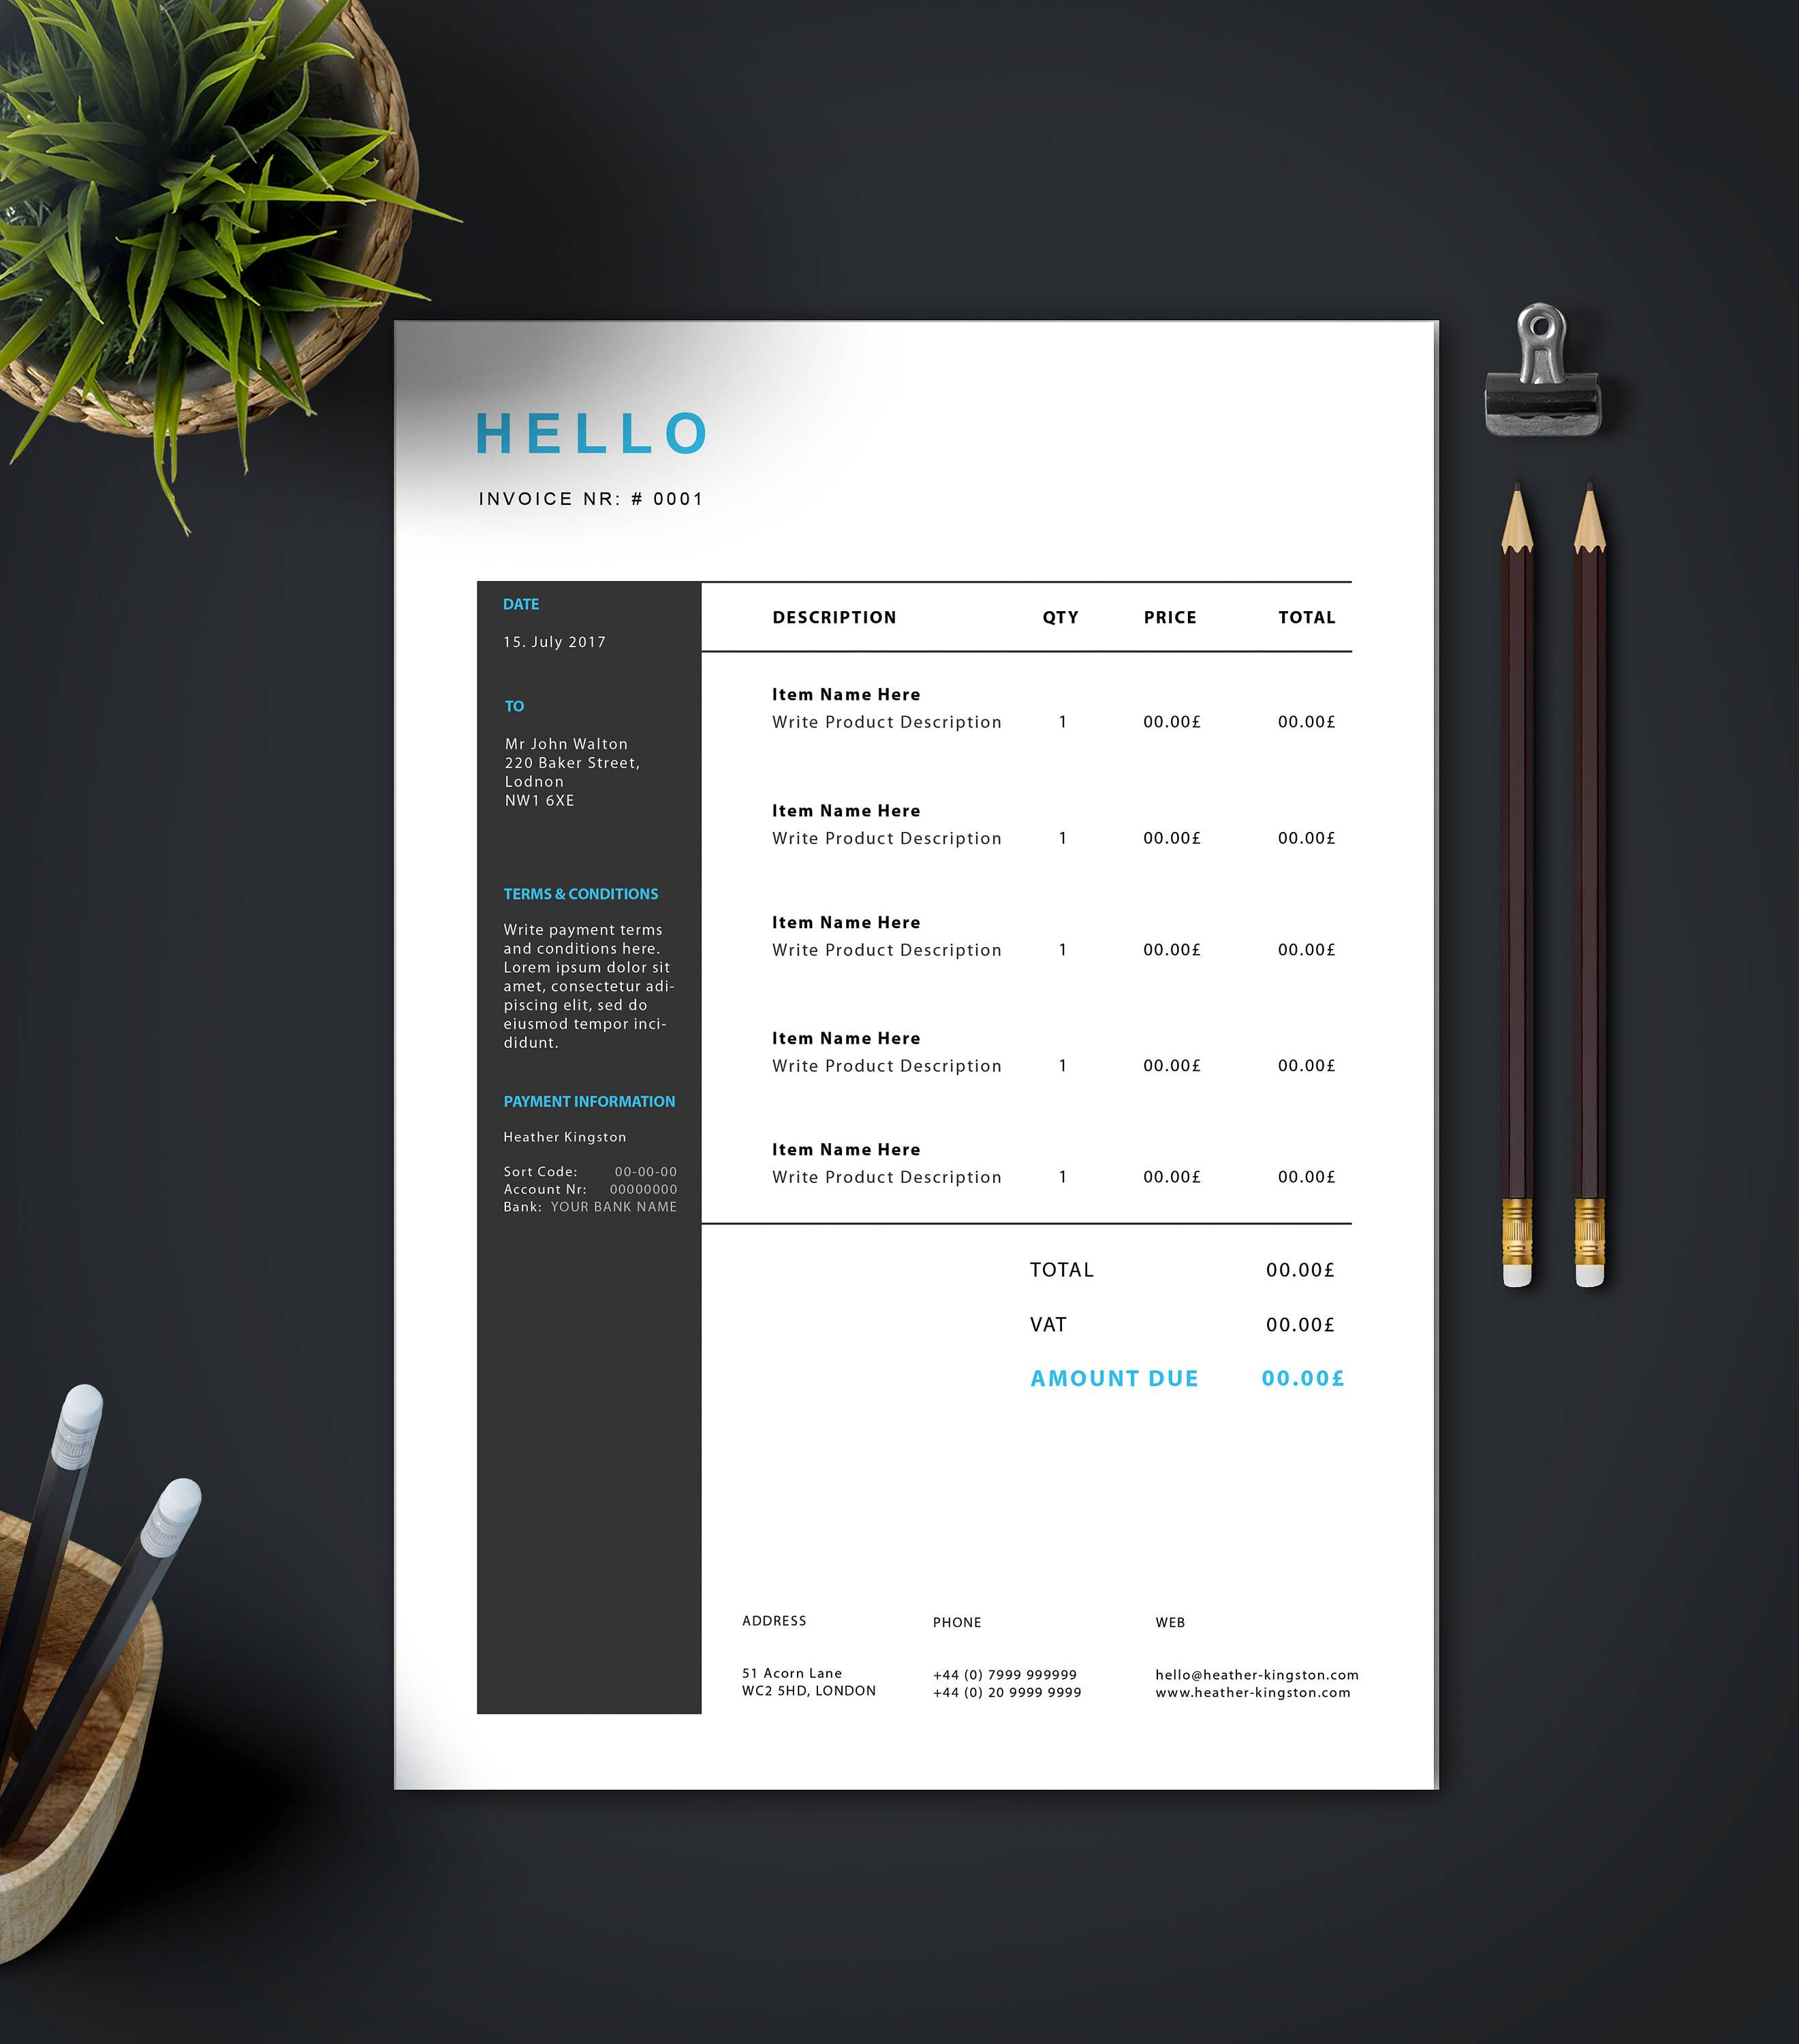 Stylish Invoice Template | DIN A4 + US Letter | Invoice Design ...